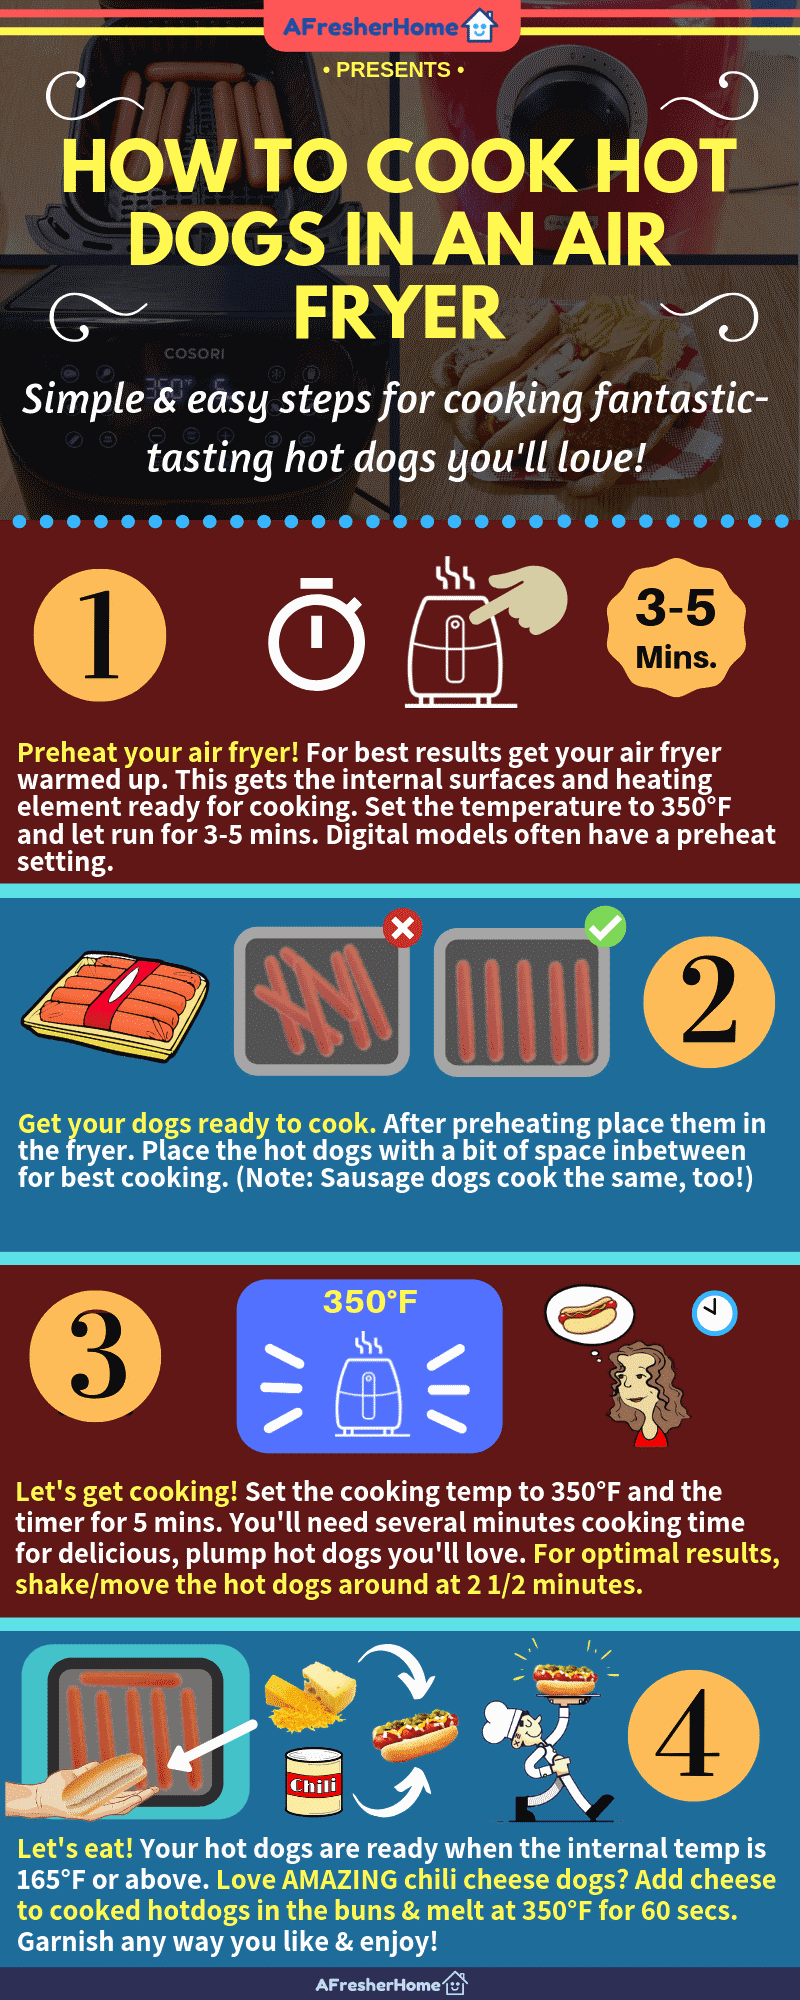 How to cook hot dogs in an air fryer facts & tips infographic